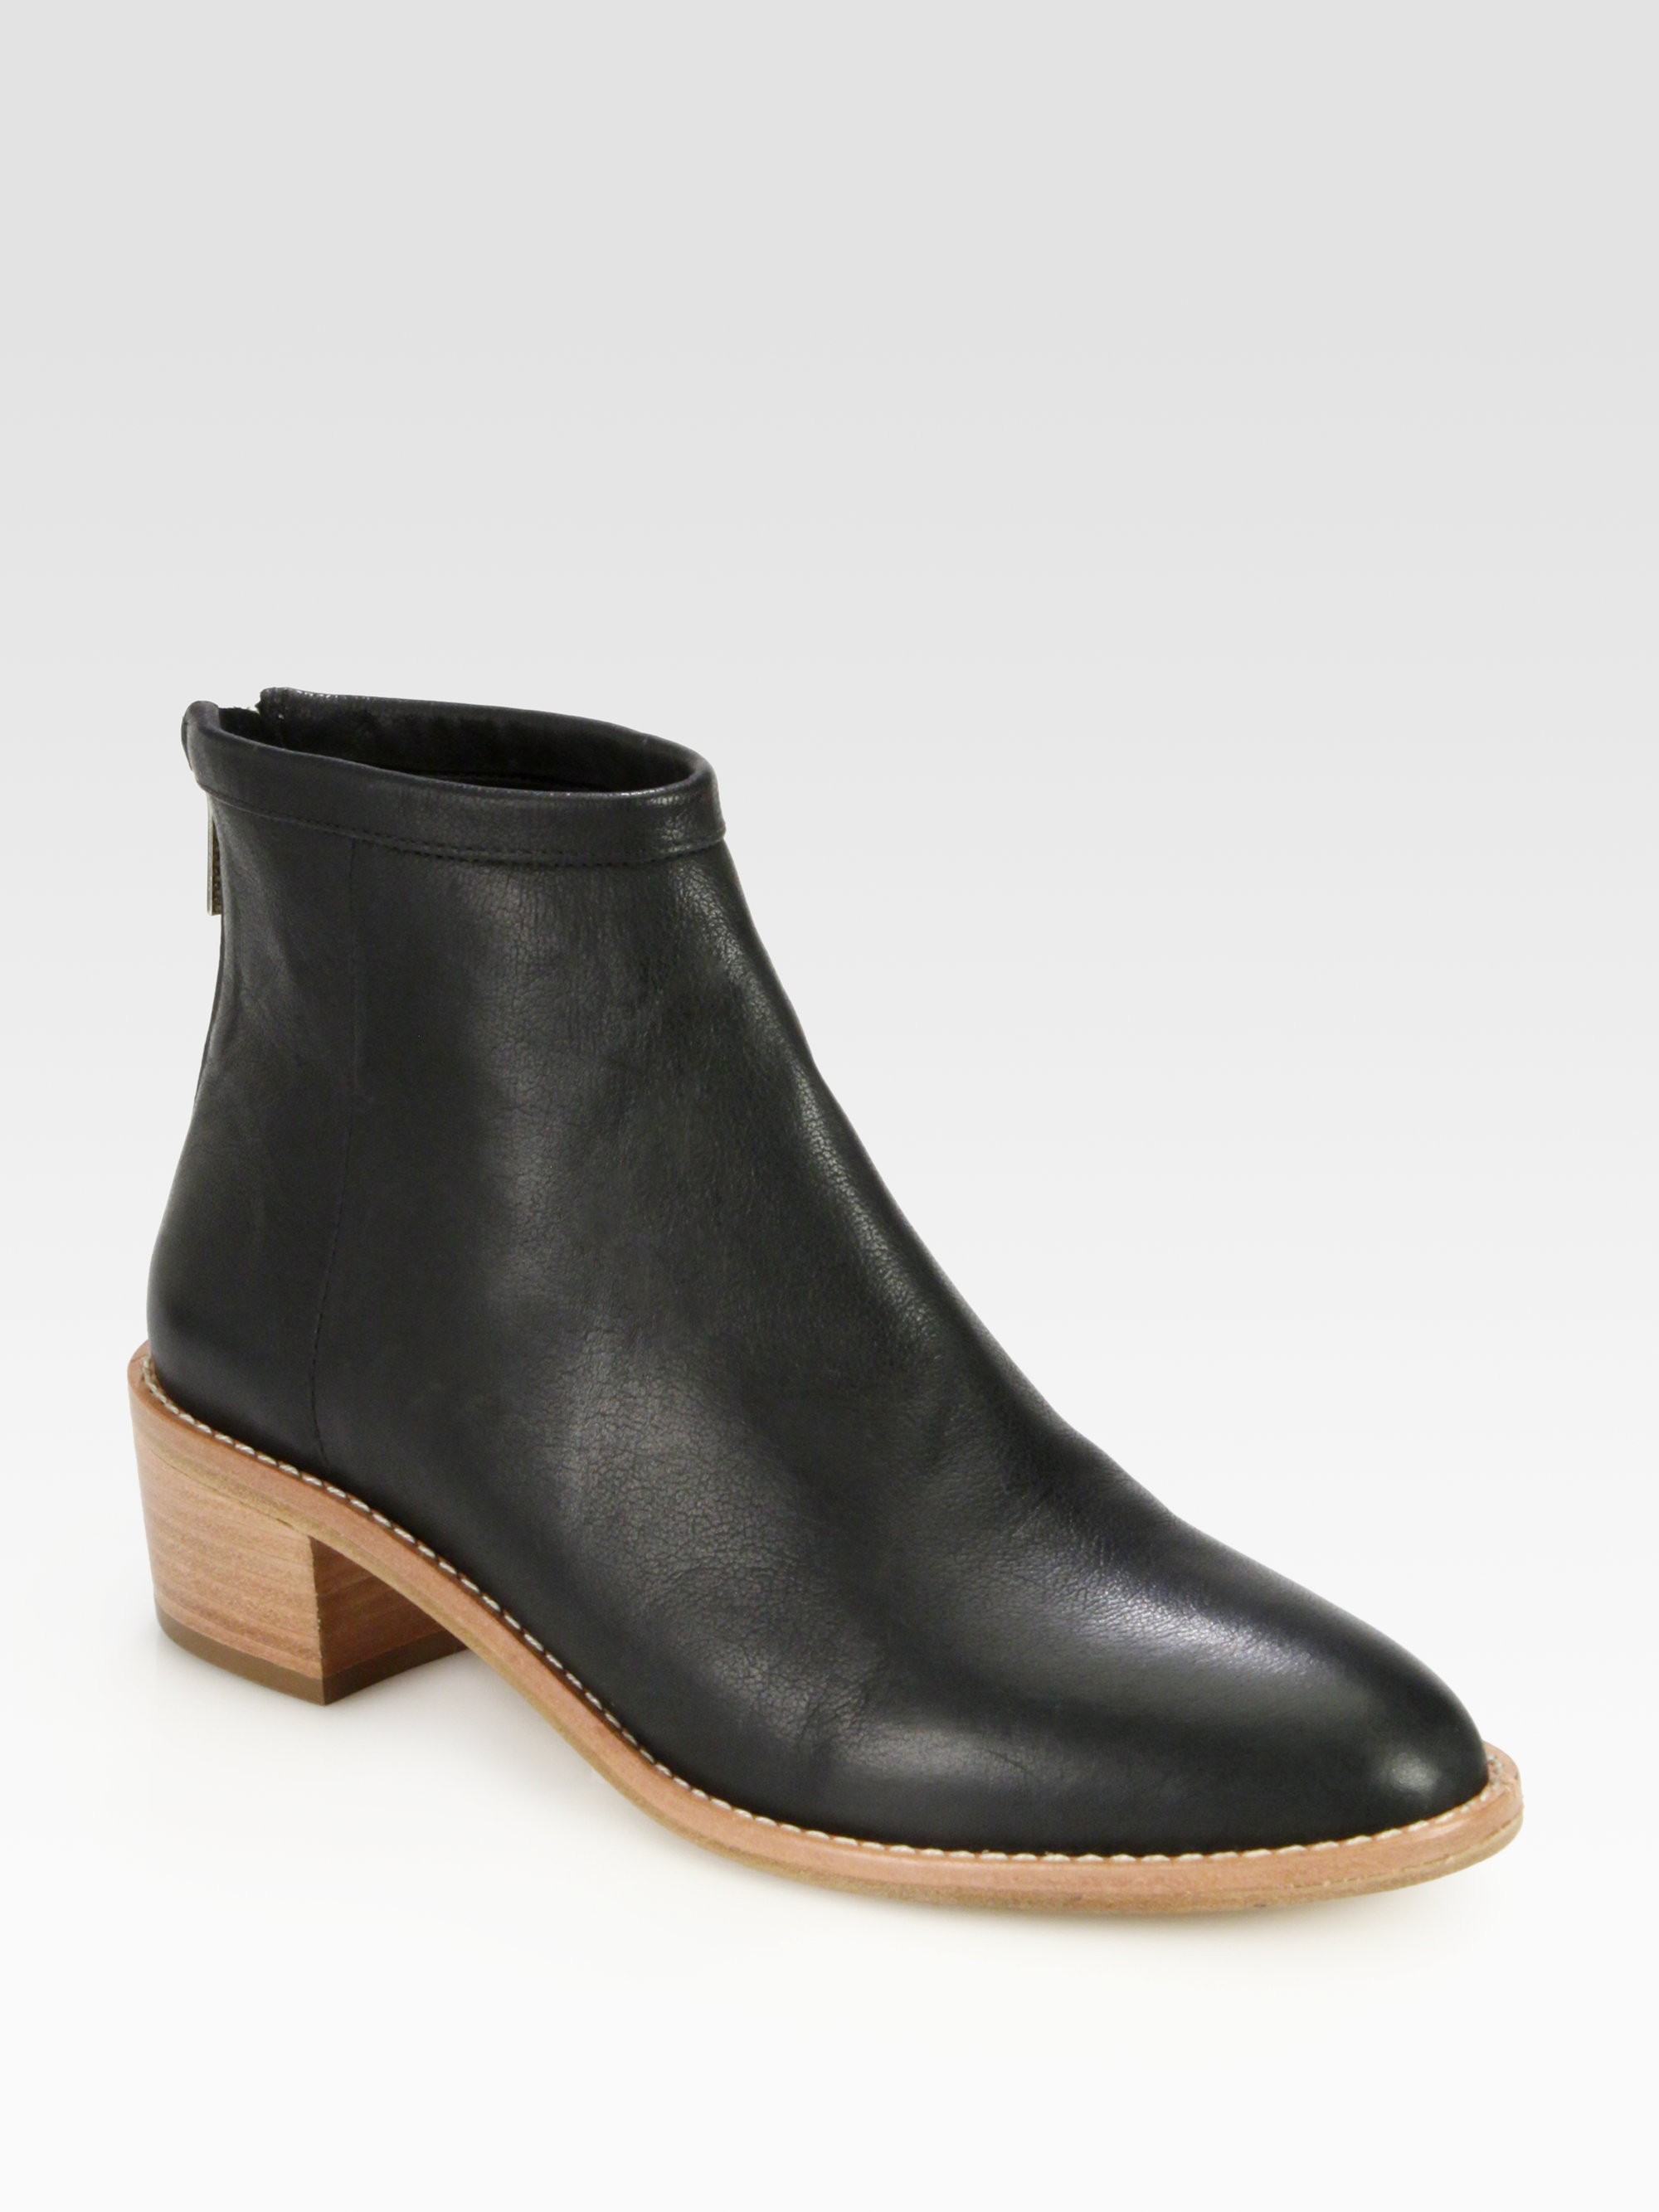 80d6d3325be8 Lyst - Loeffler Randall Felix Leather Ankle Boots in Black